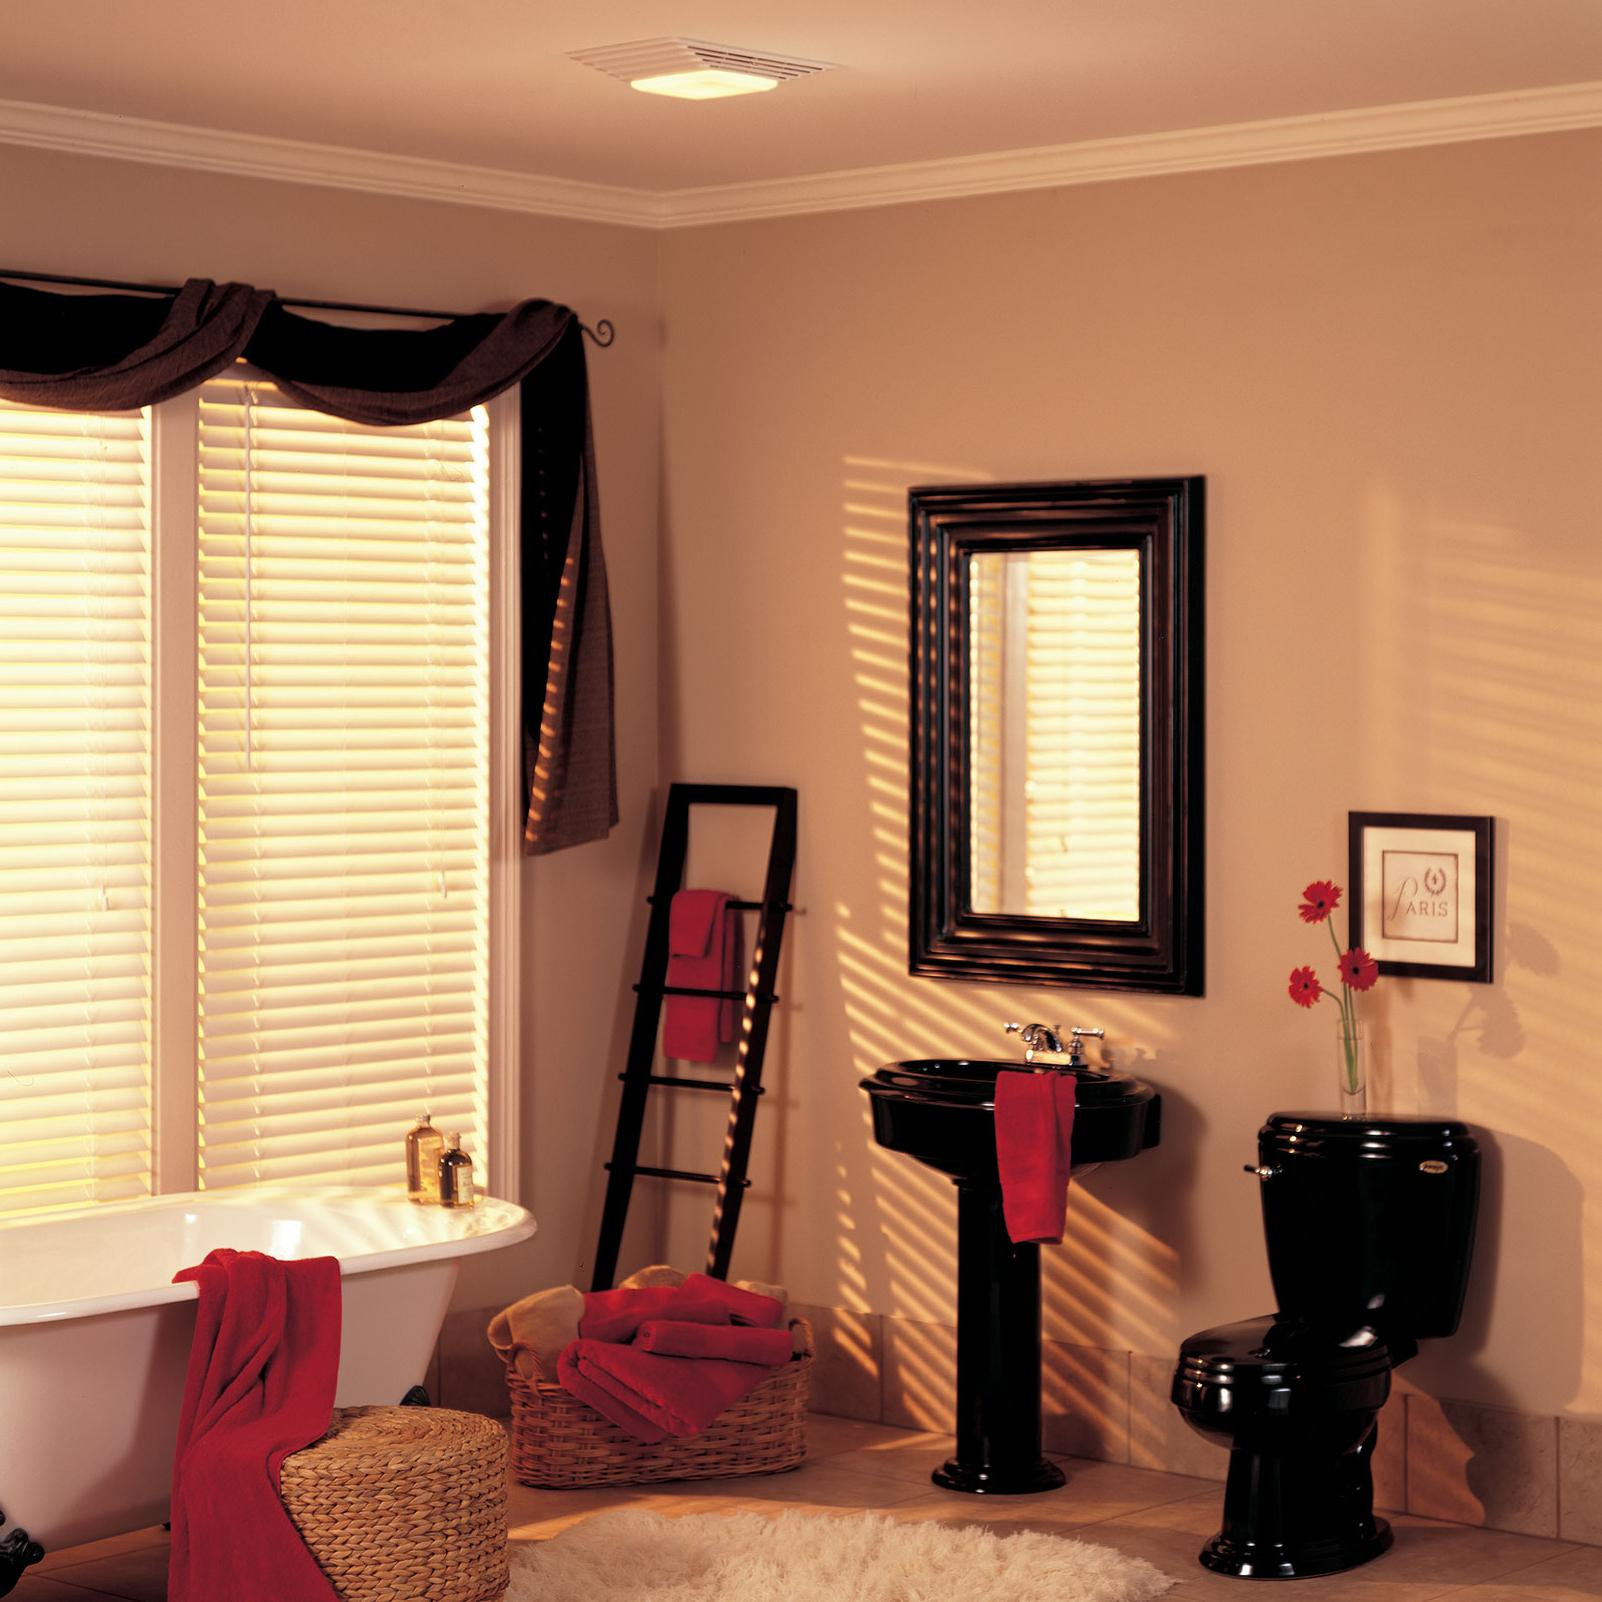 Broan Nutone 659 Heater Fan And Light Combo For Bathroom